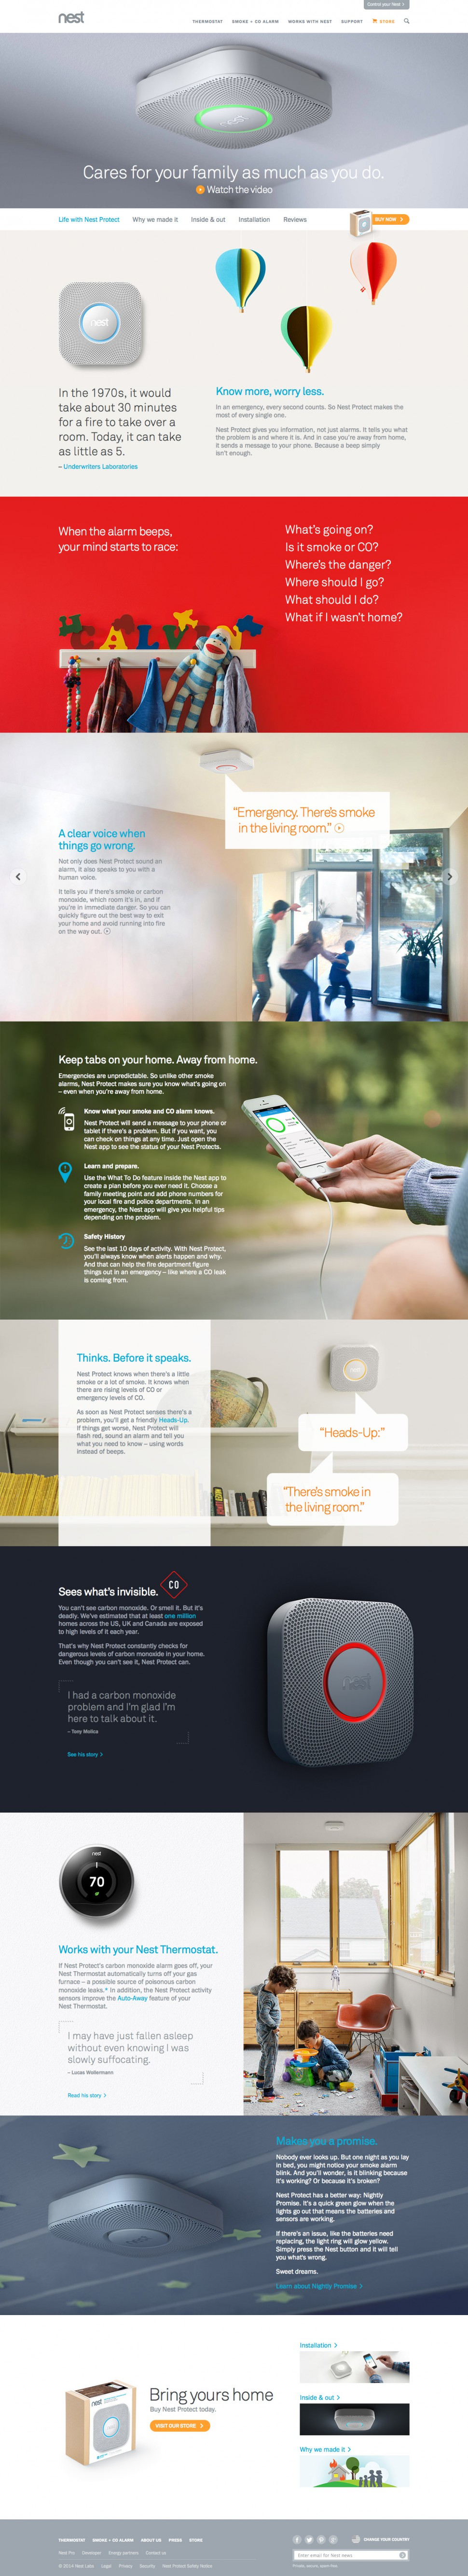 nest protect - landing page